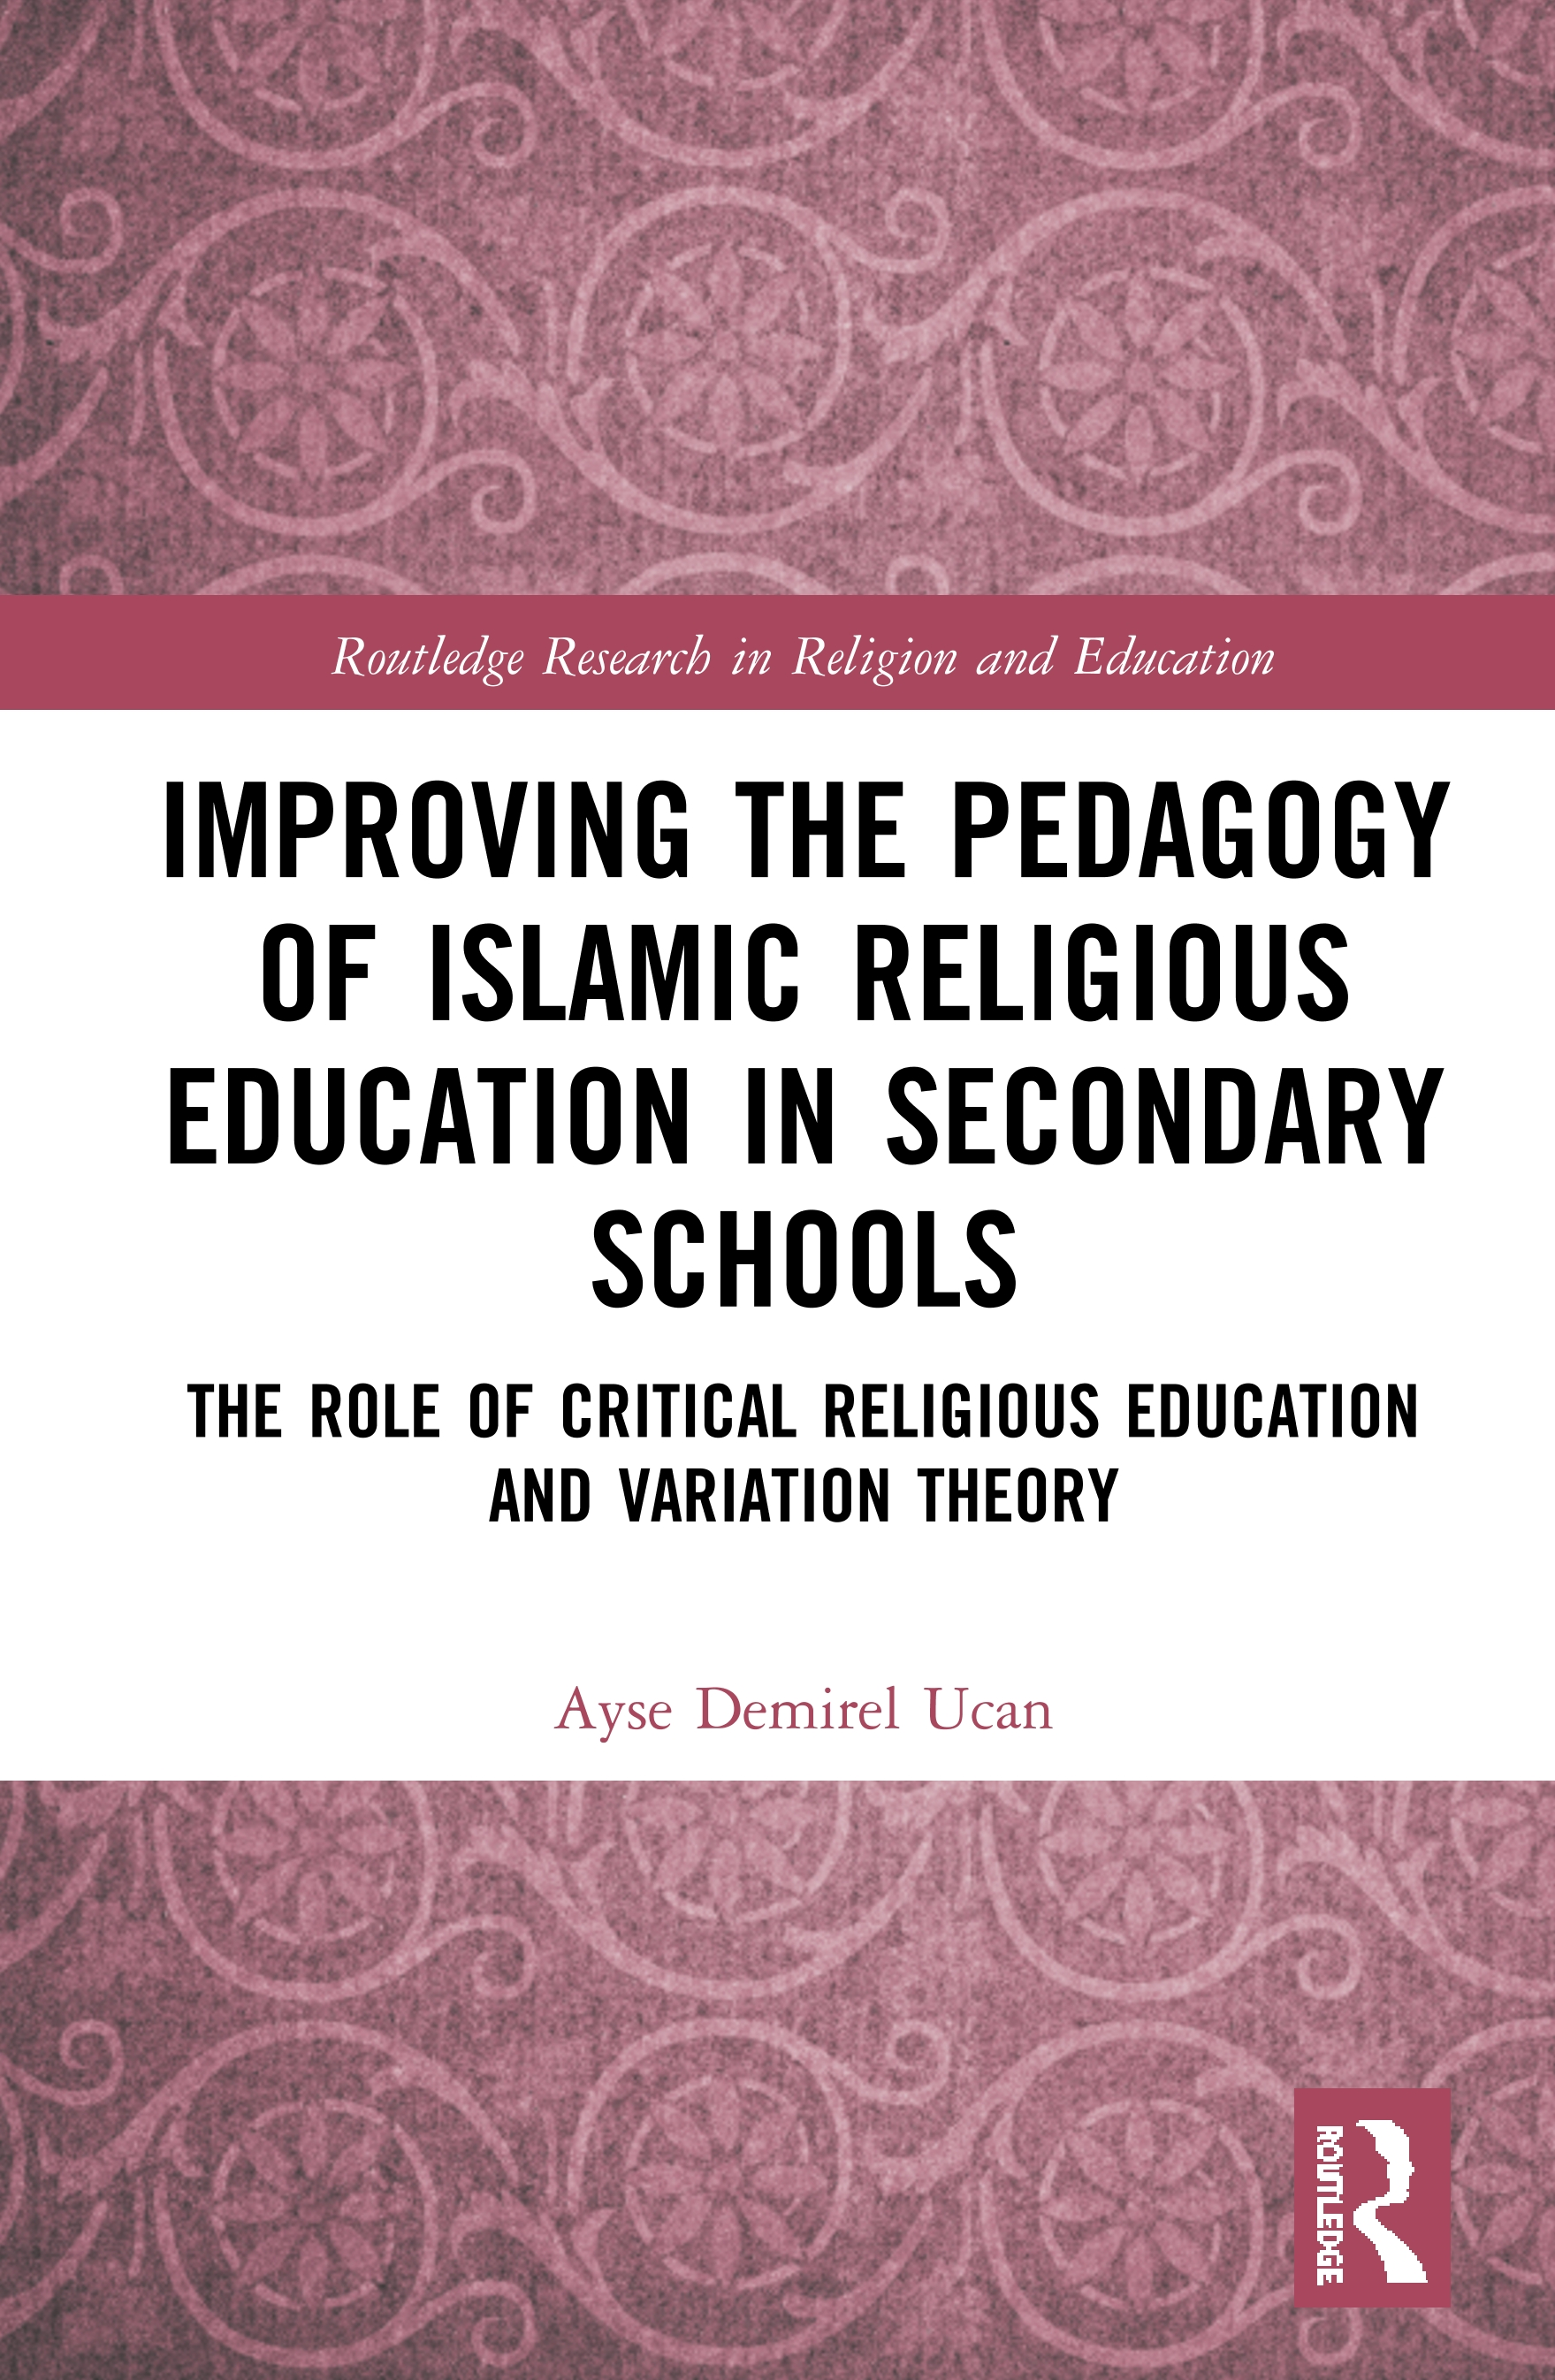 Improving the Pedagogy of Islamic Religious Education in Secondary Schools: The Role of Critical Religious Education and Variation Theory book cover